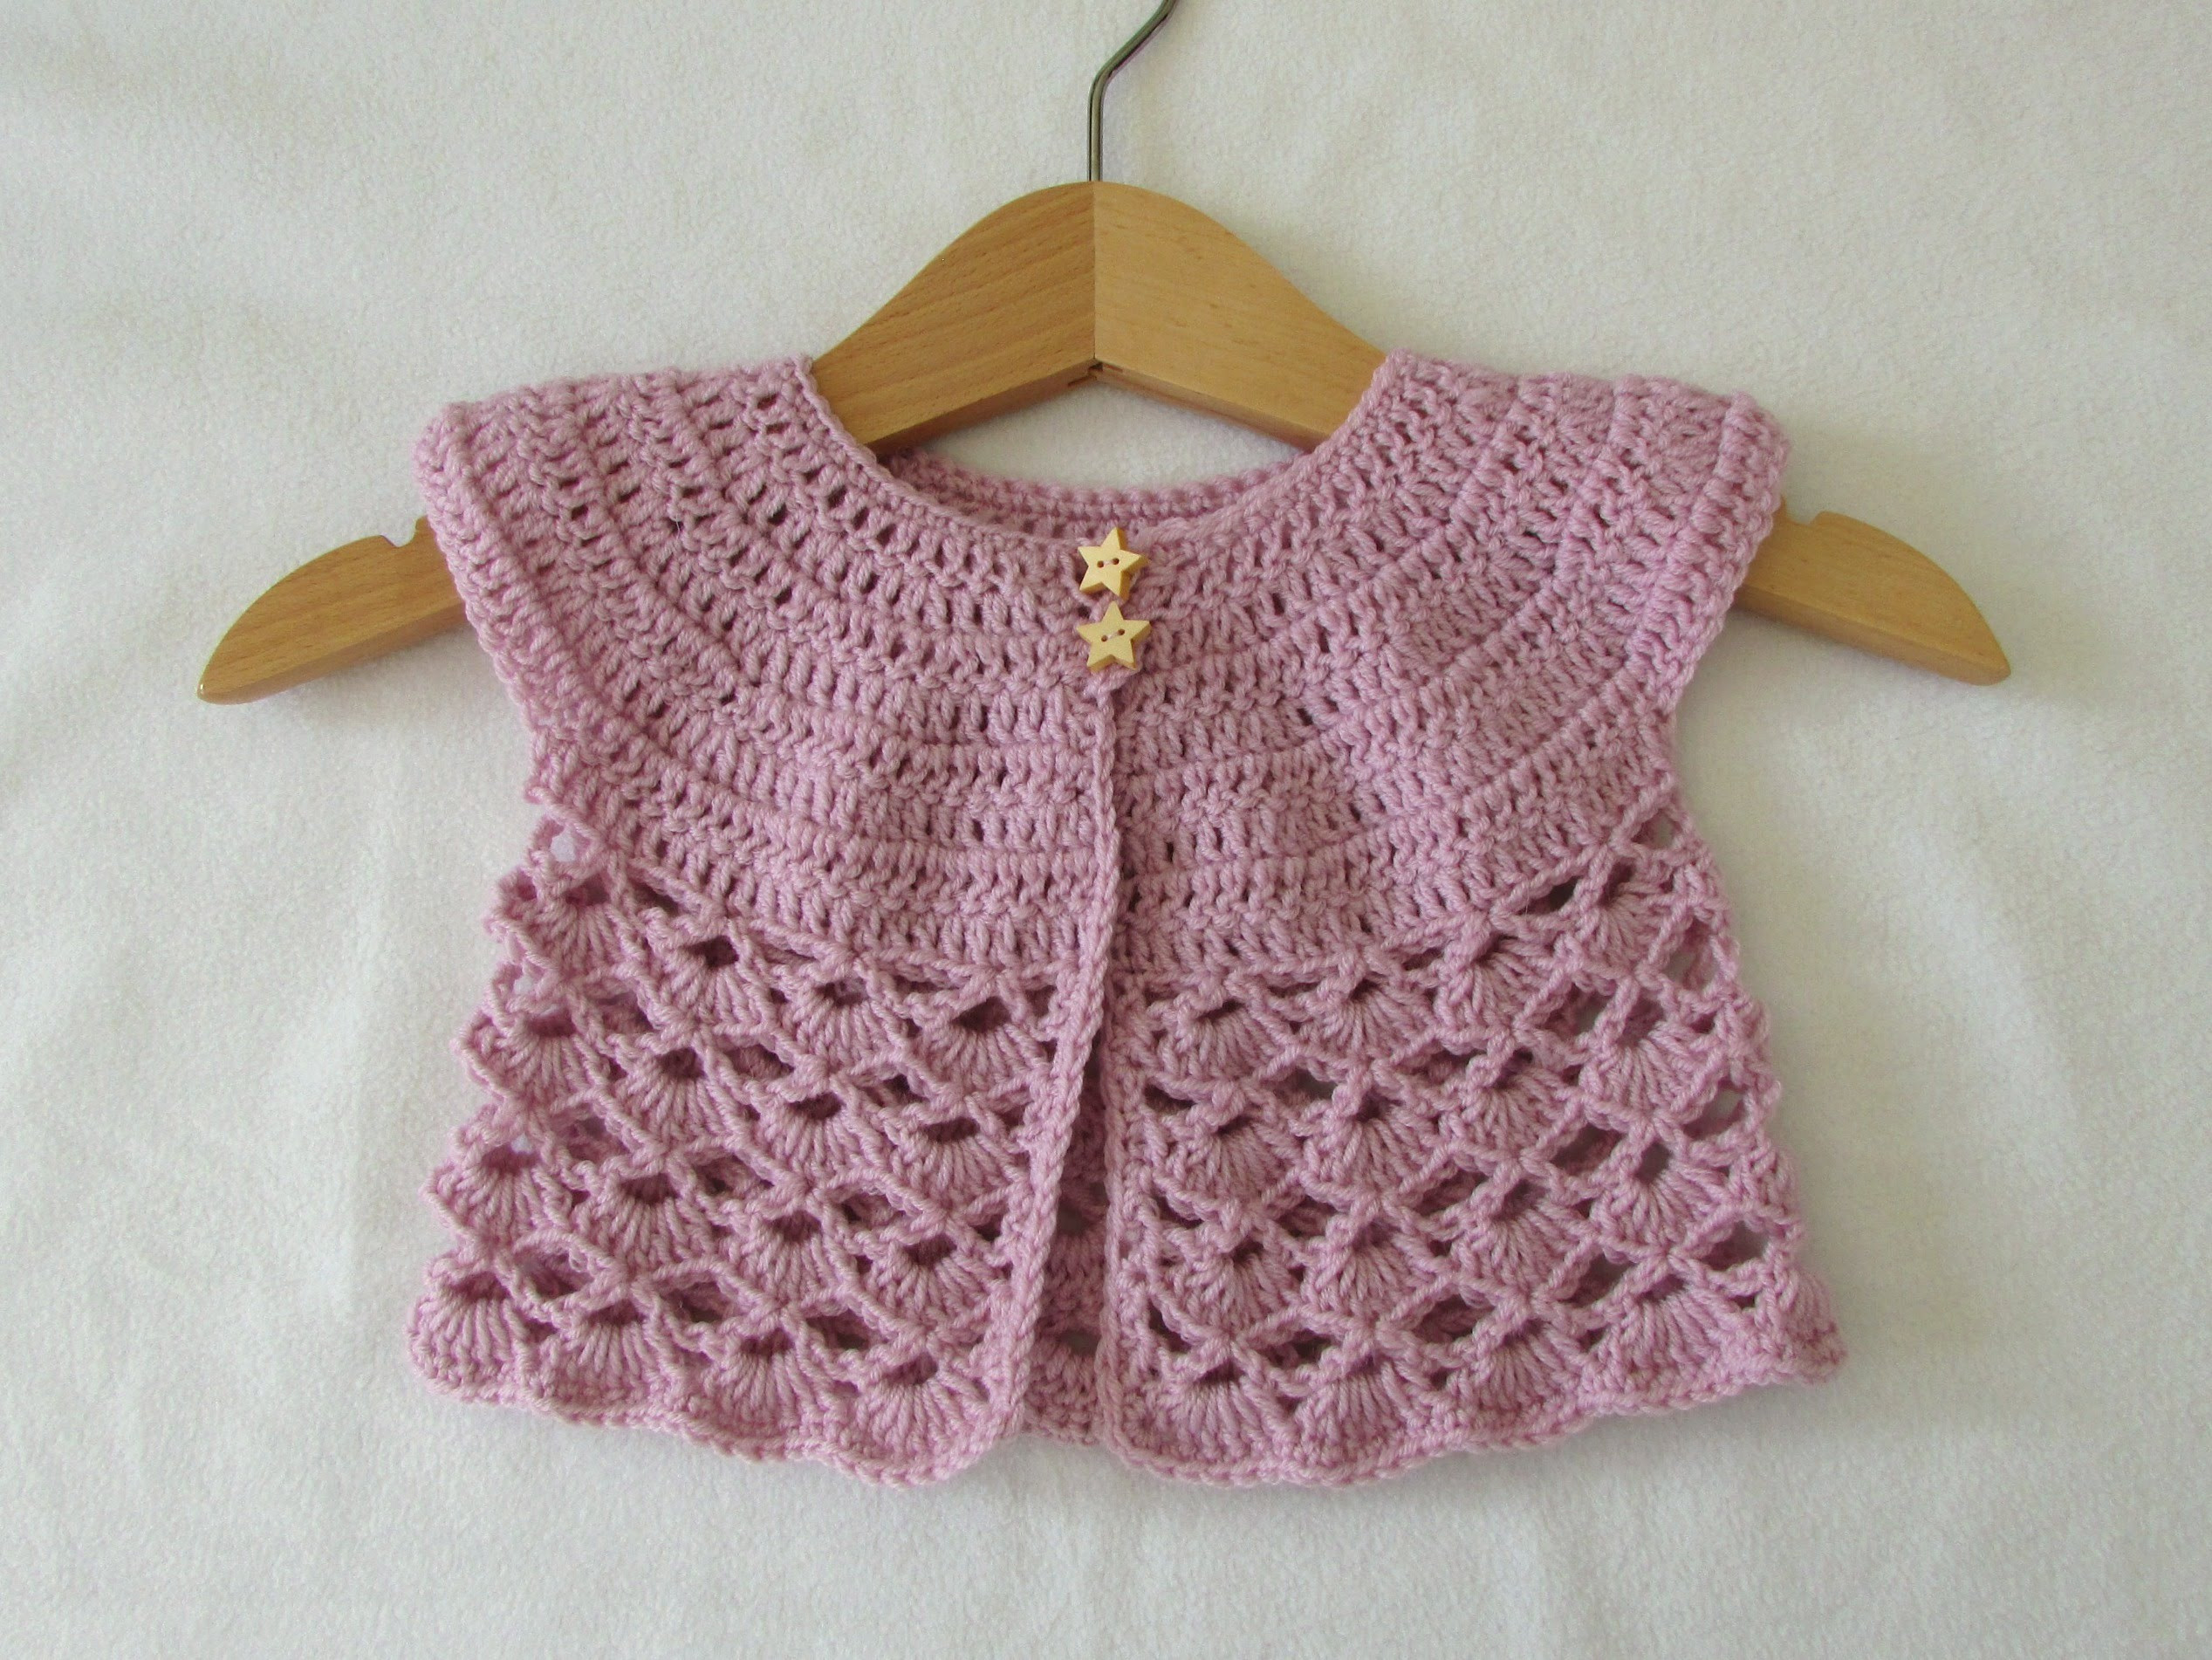 Crochet toddler Sweater Awesome How to Crochet Baby Sweater Crochet and Knitting Of Lovely 50 Photos Crochet toddler Sweater